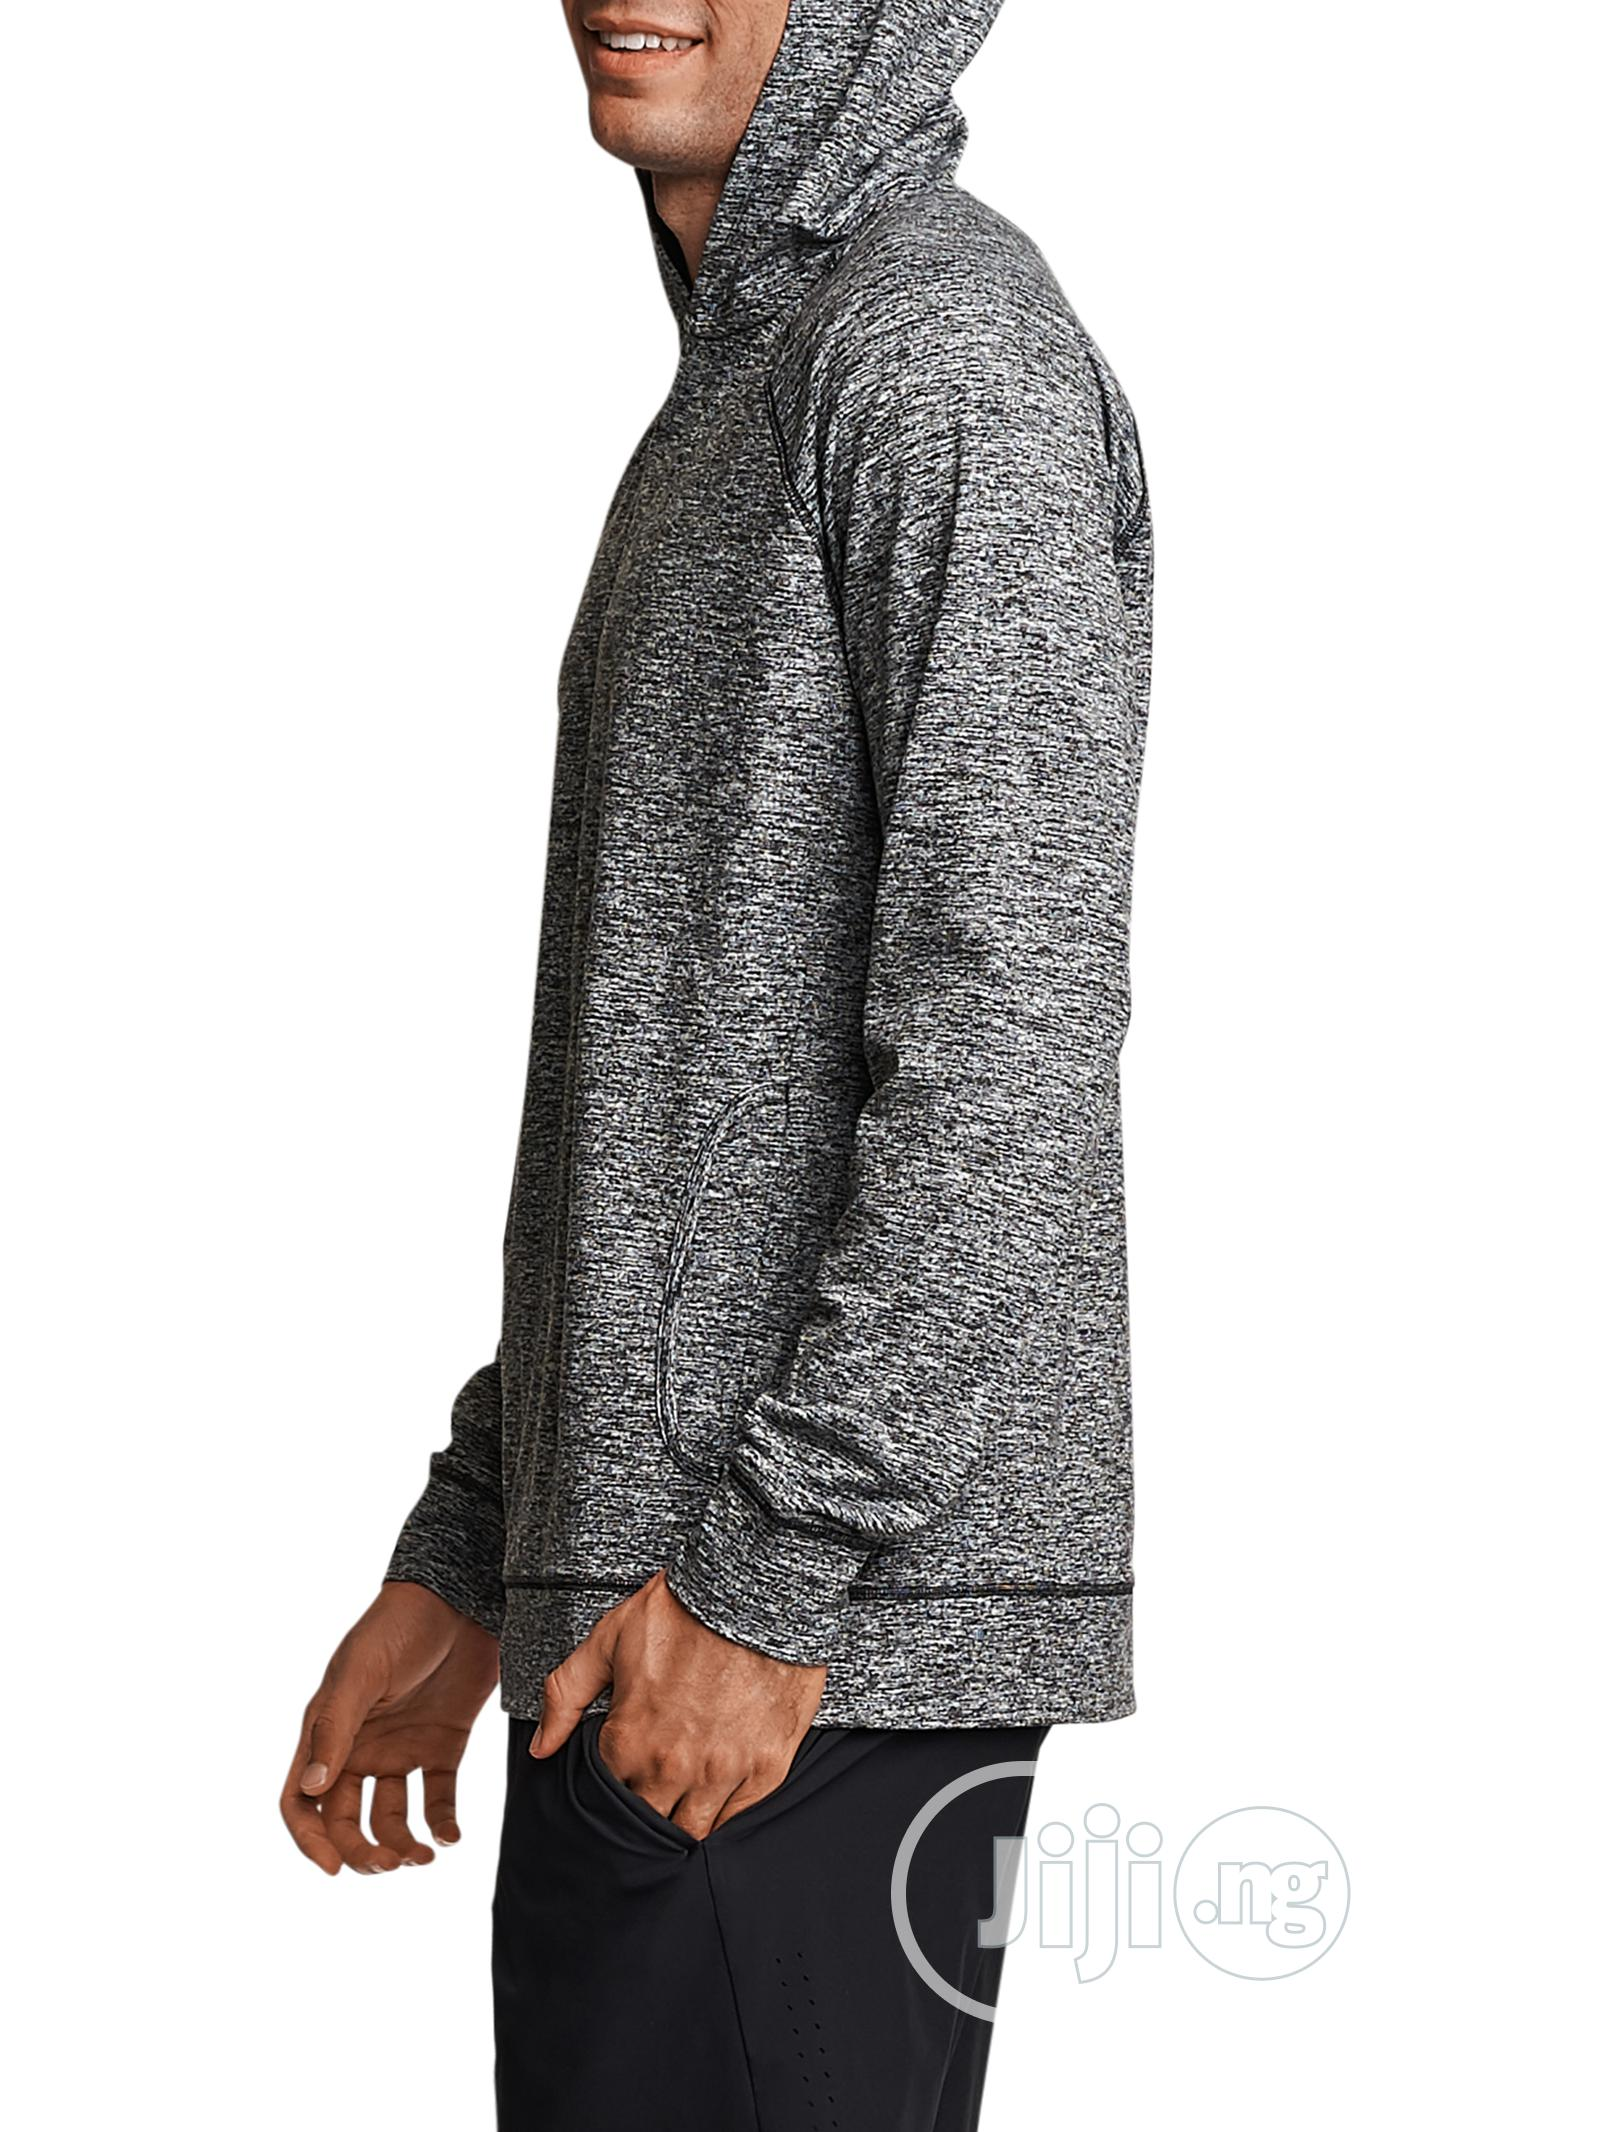 Hoodies Quality Wear for Retail and Wholesale | Clothing for sale in Isolo, Lagos State, Nigeria